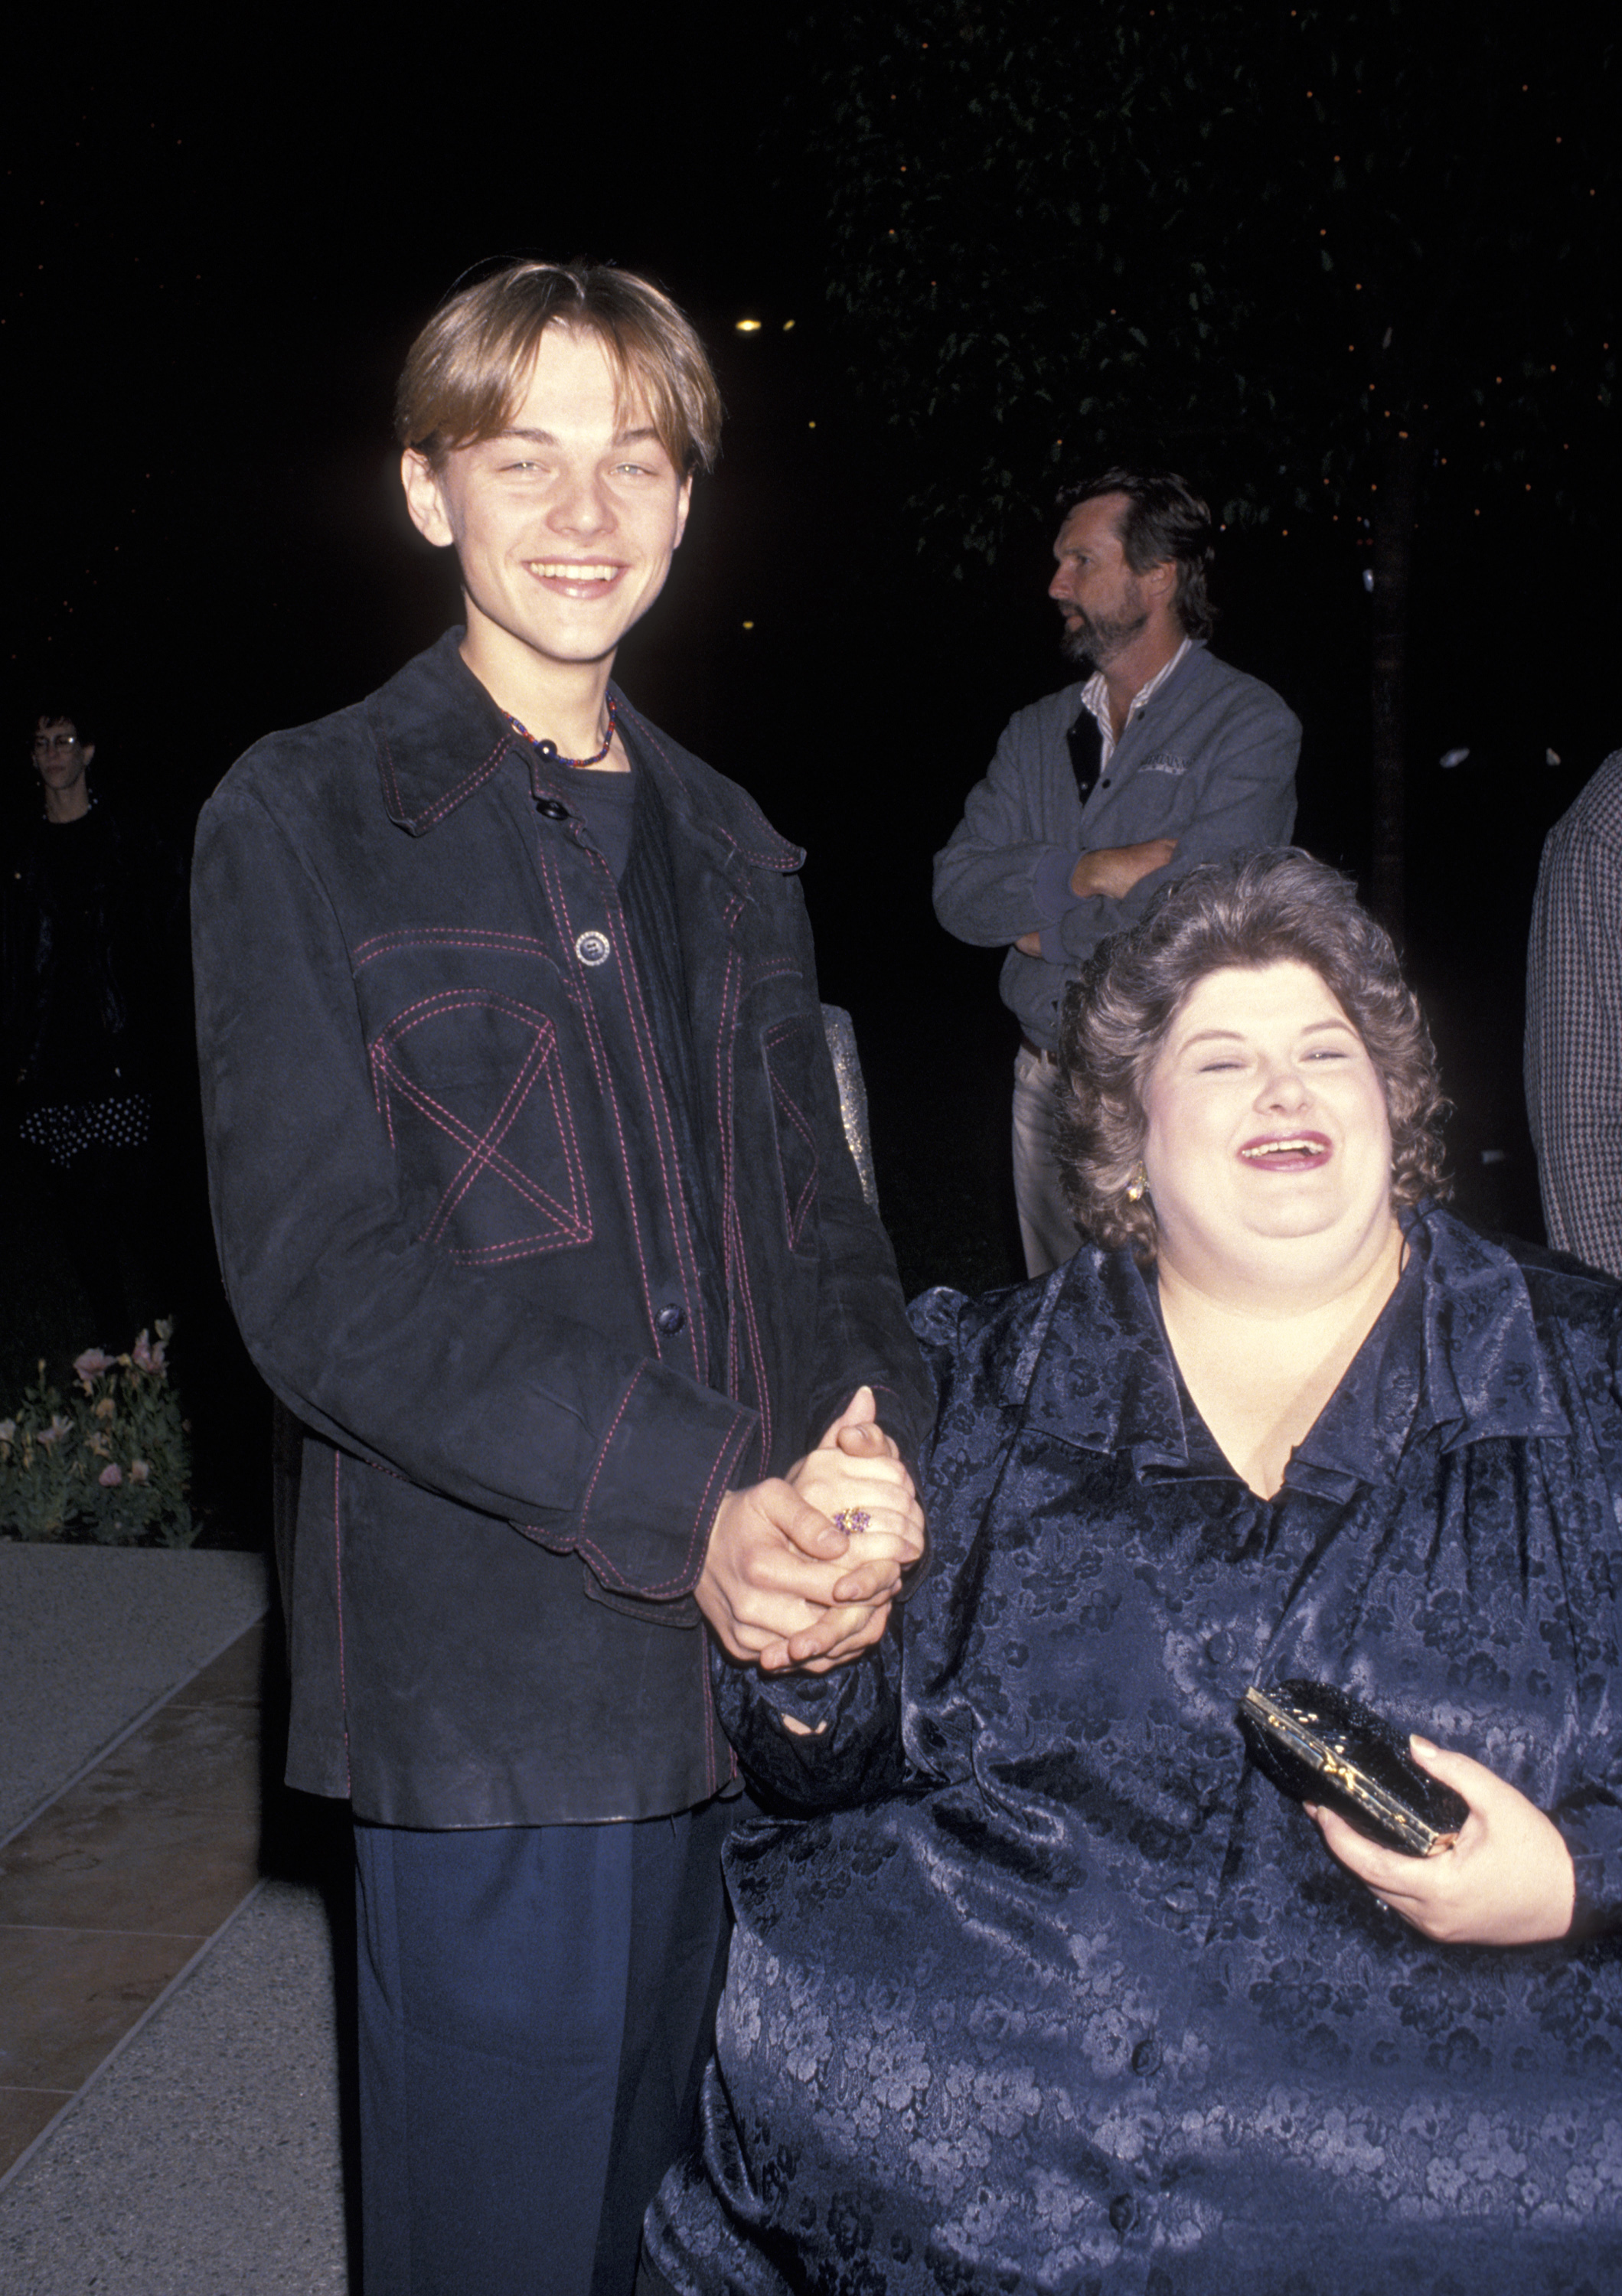 Leonardo DiCaprio and Darlene Cates